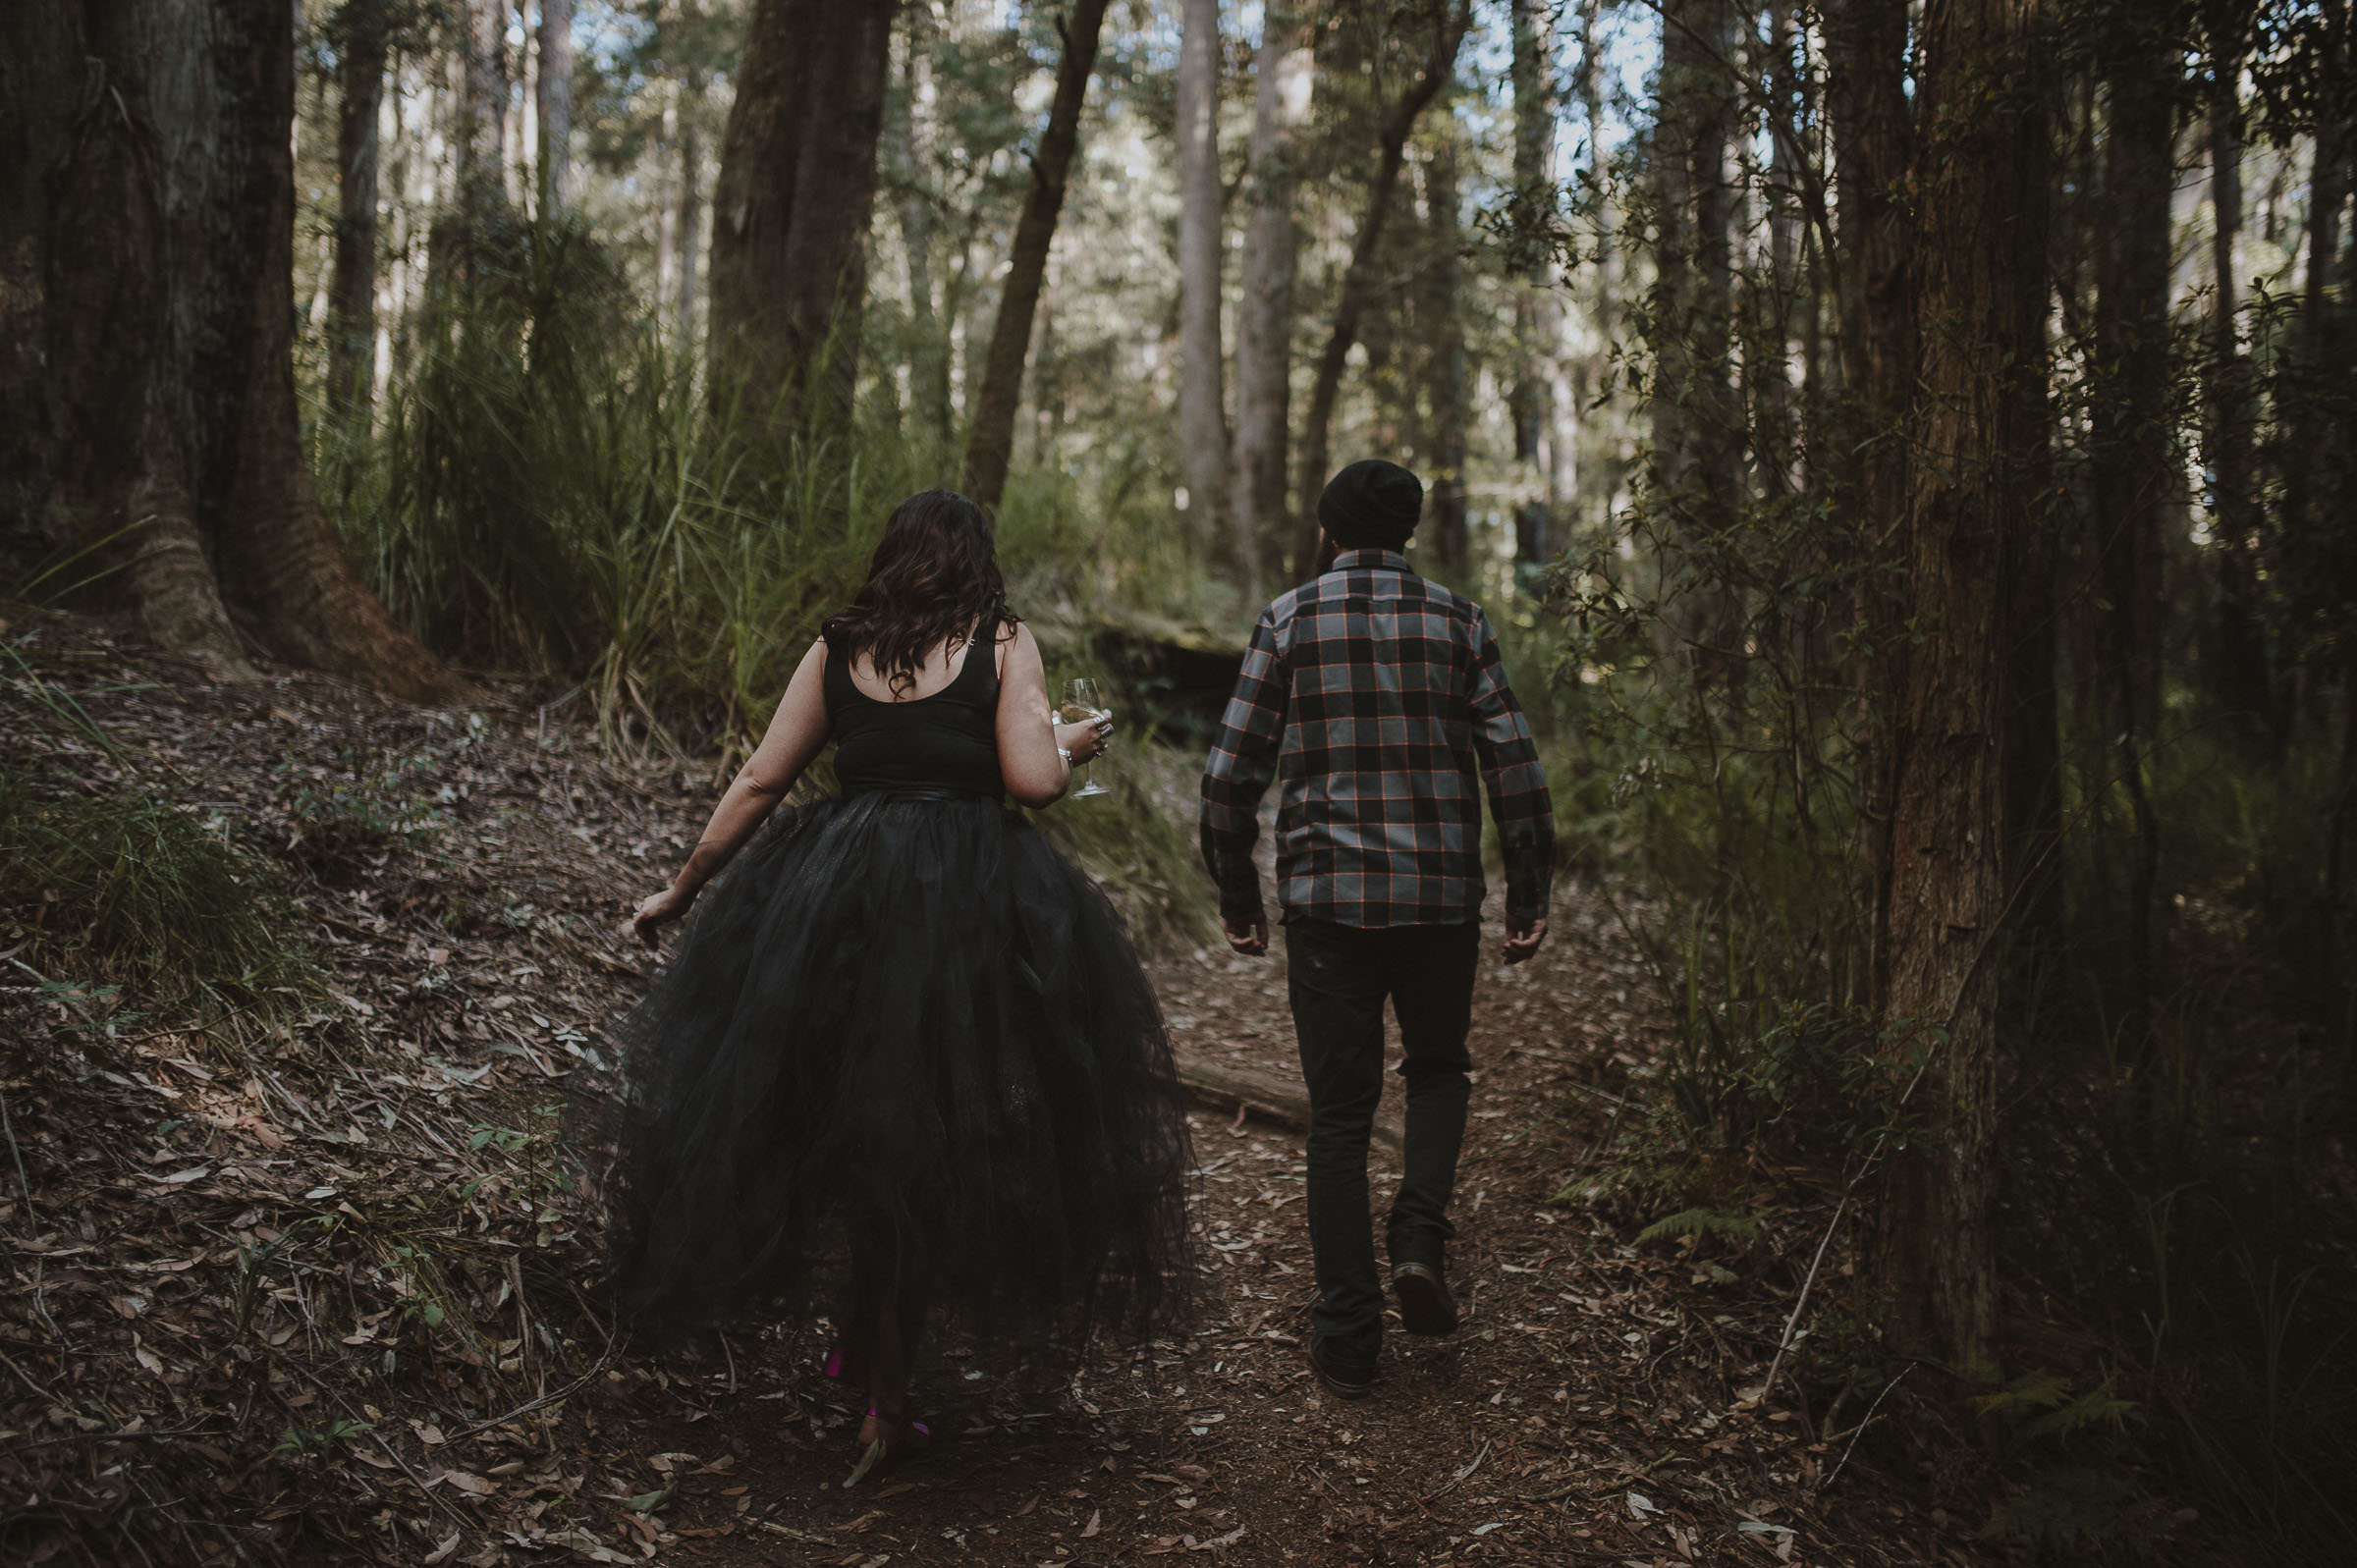 Madeline_Jamie_Watagens_Pine_Forest_Engagement_Shoot_Blog-8.jpg